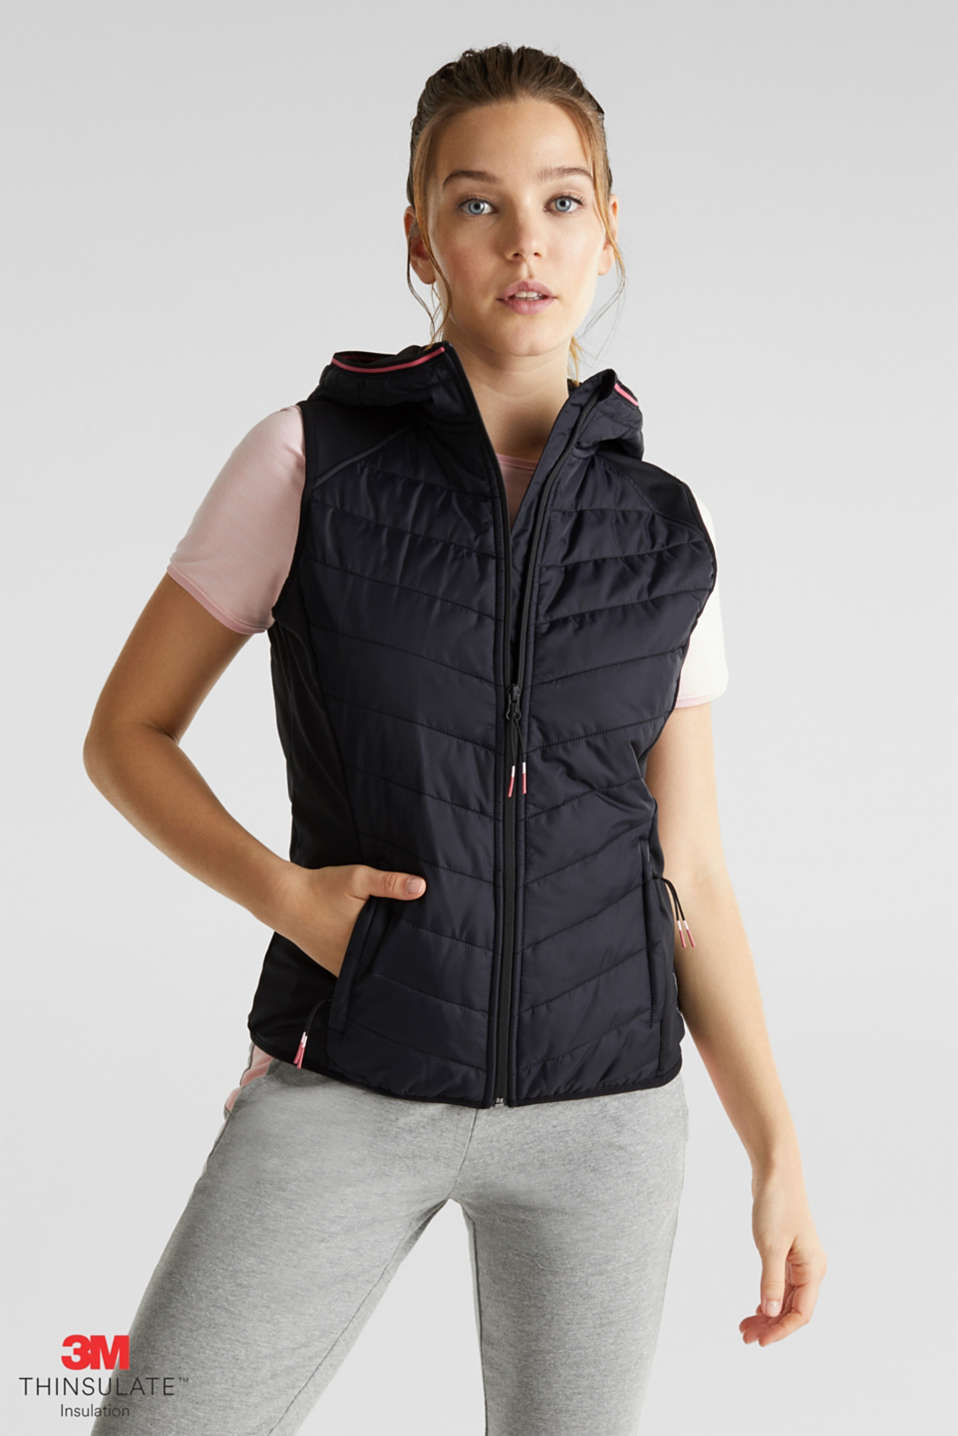 Esprit - Bodywarmer met 3M™ Thinsulate™-vulling